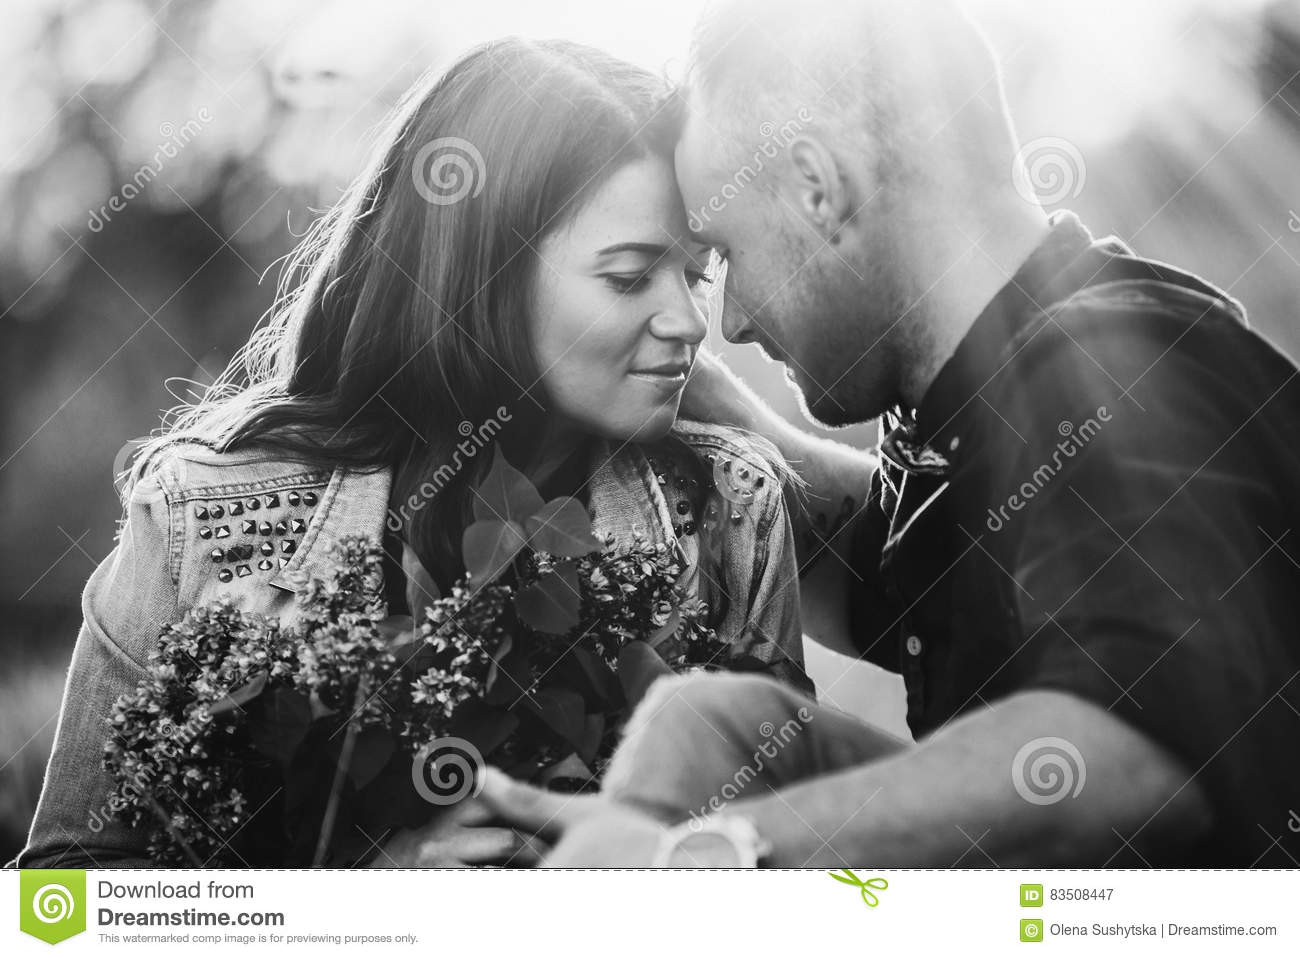 Young couple on holiday being romantic and kissing while relaxing during a summer break vacation love and relationships outdoors black and white